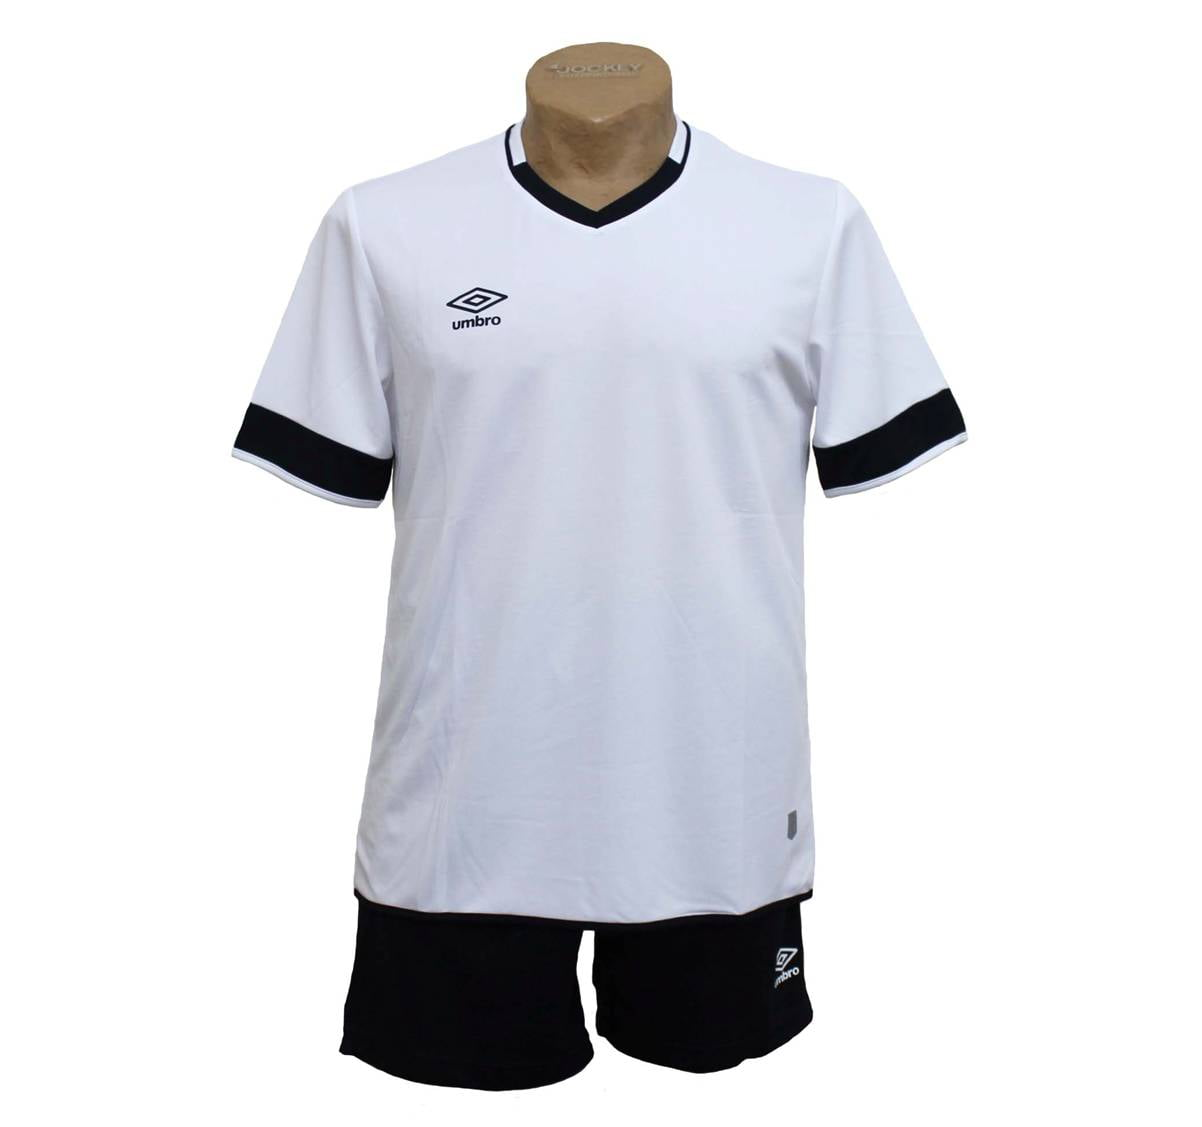 0afda1c6e93 Umbro Football Kit  White Black (5171001)